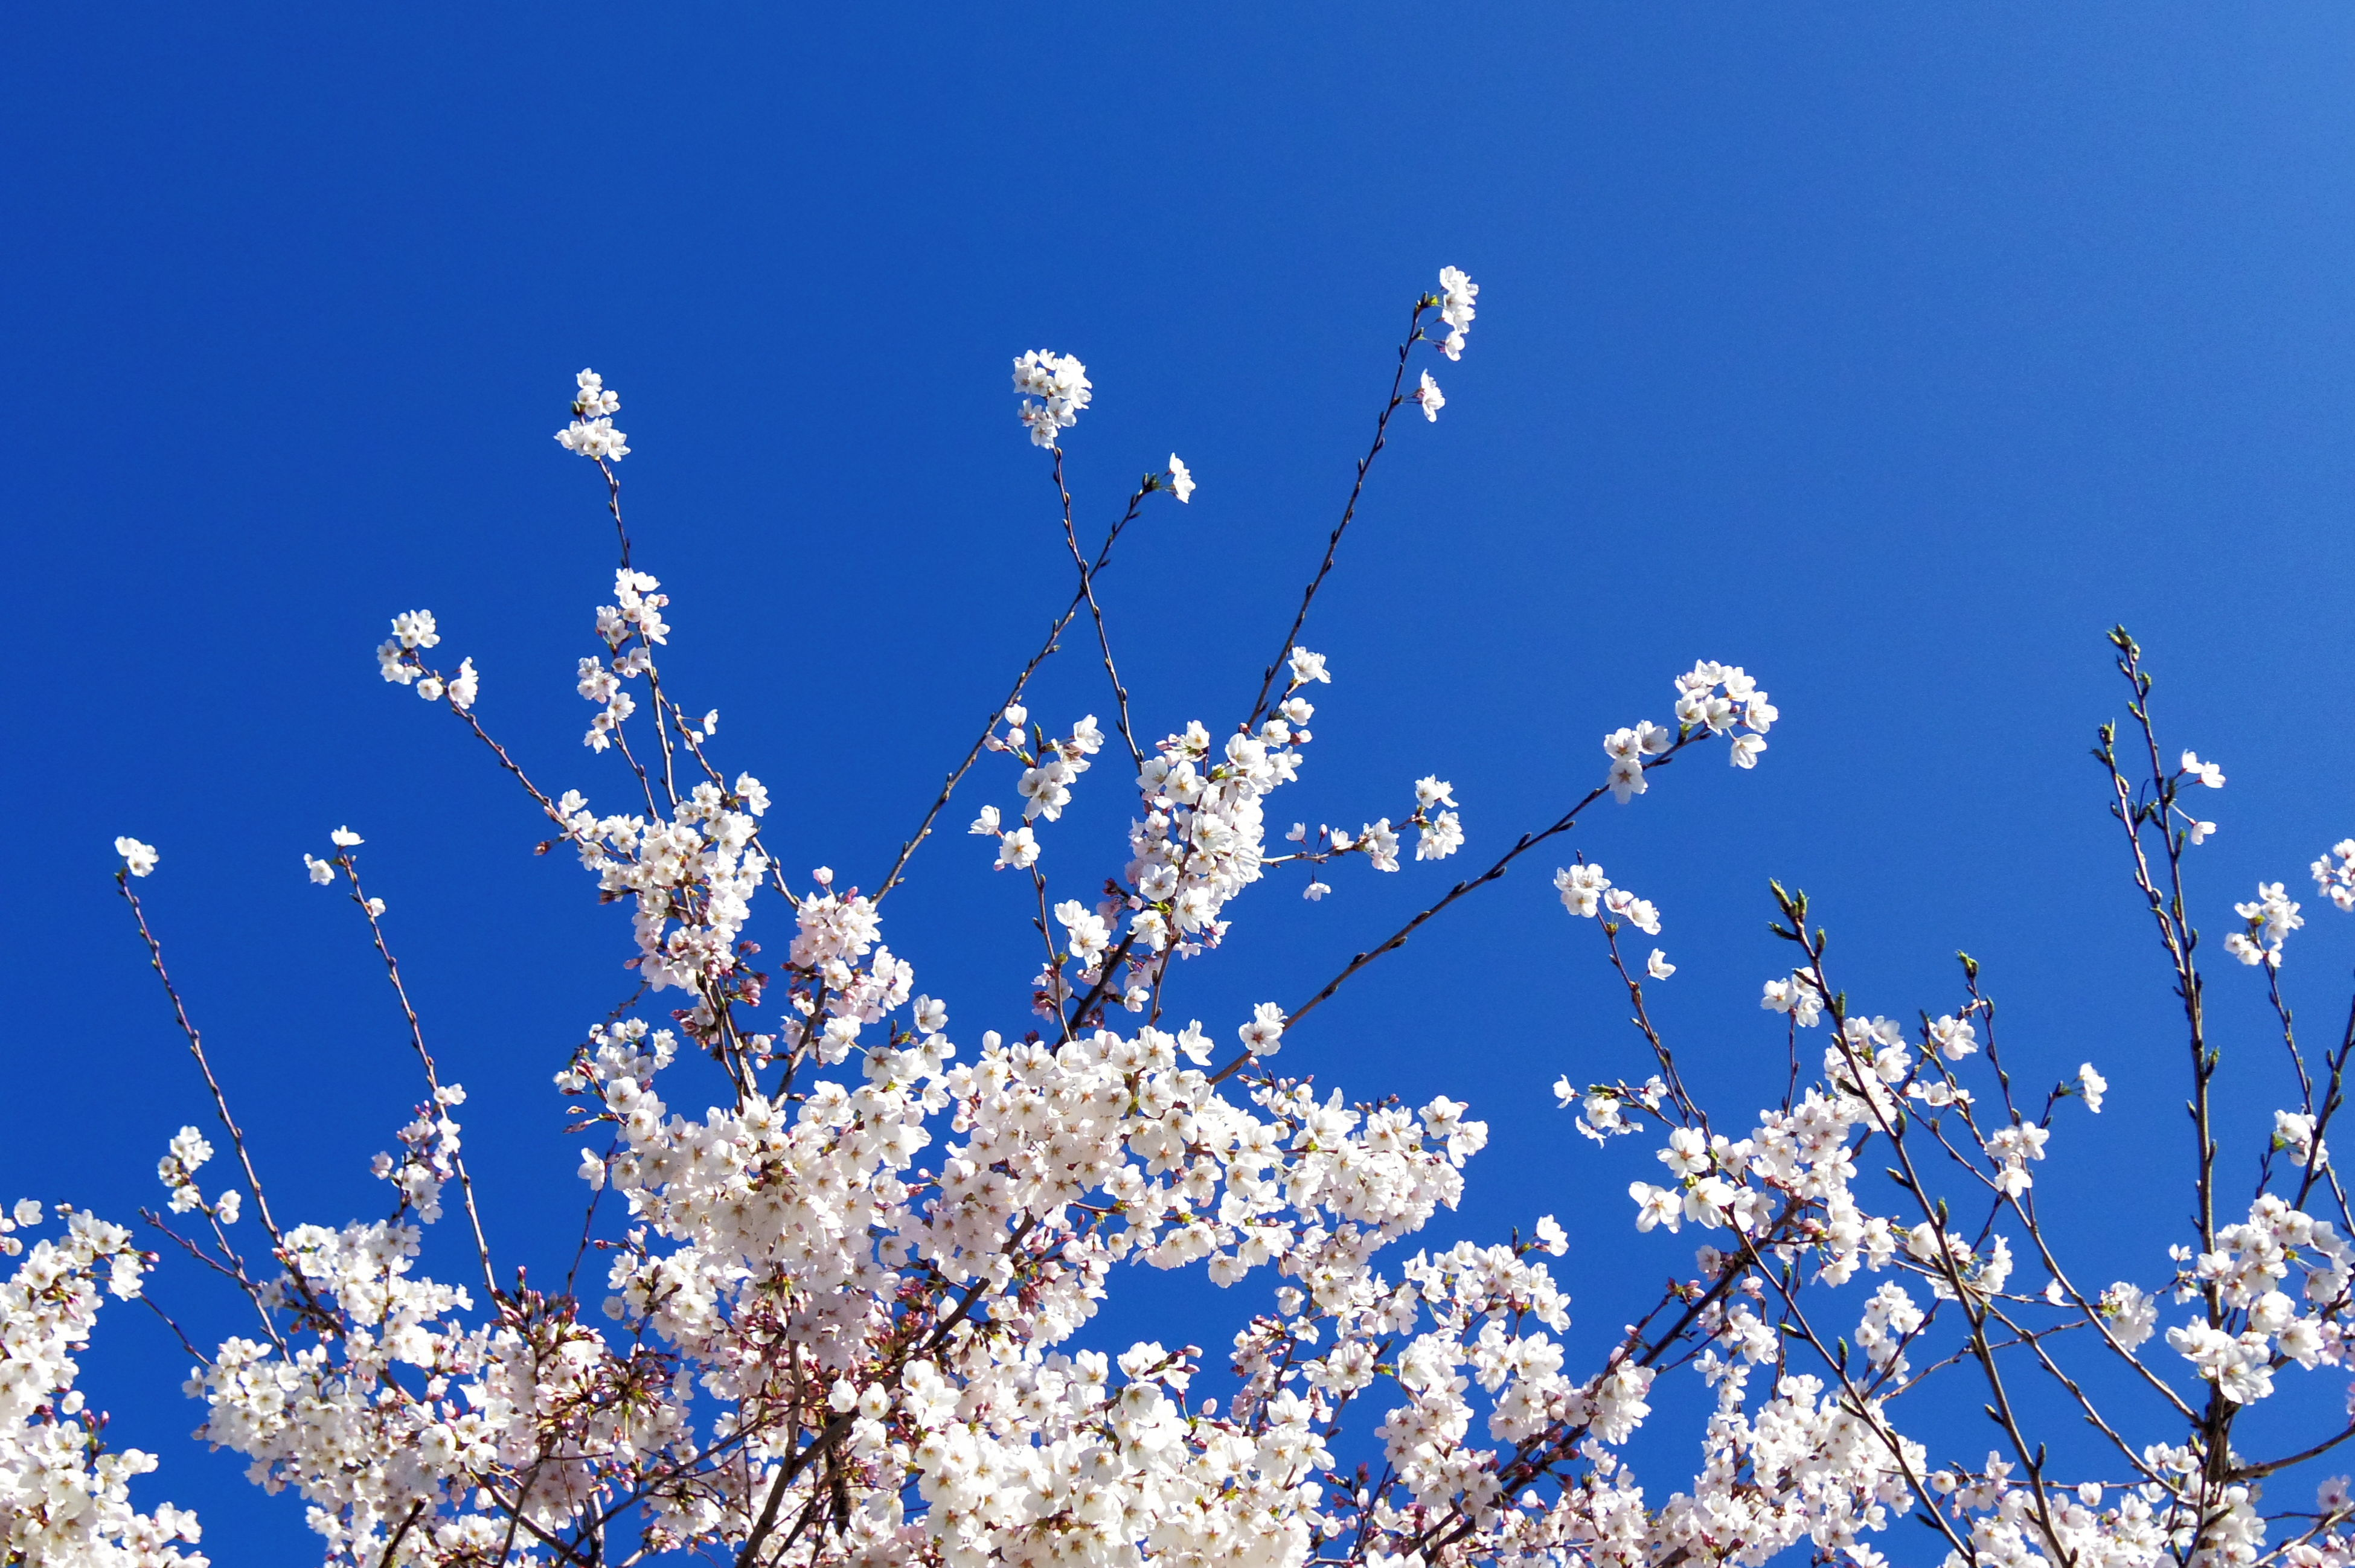 low angle view, flower, clear sky, blue, growth, freshness, tree, branch, beauty in nature, nature, fragility, blossom, blooming, copy space, in bloom, high section, day, sky, outdoors, springtime